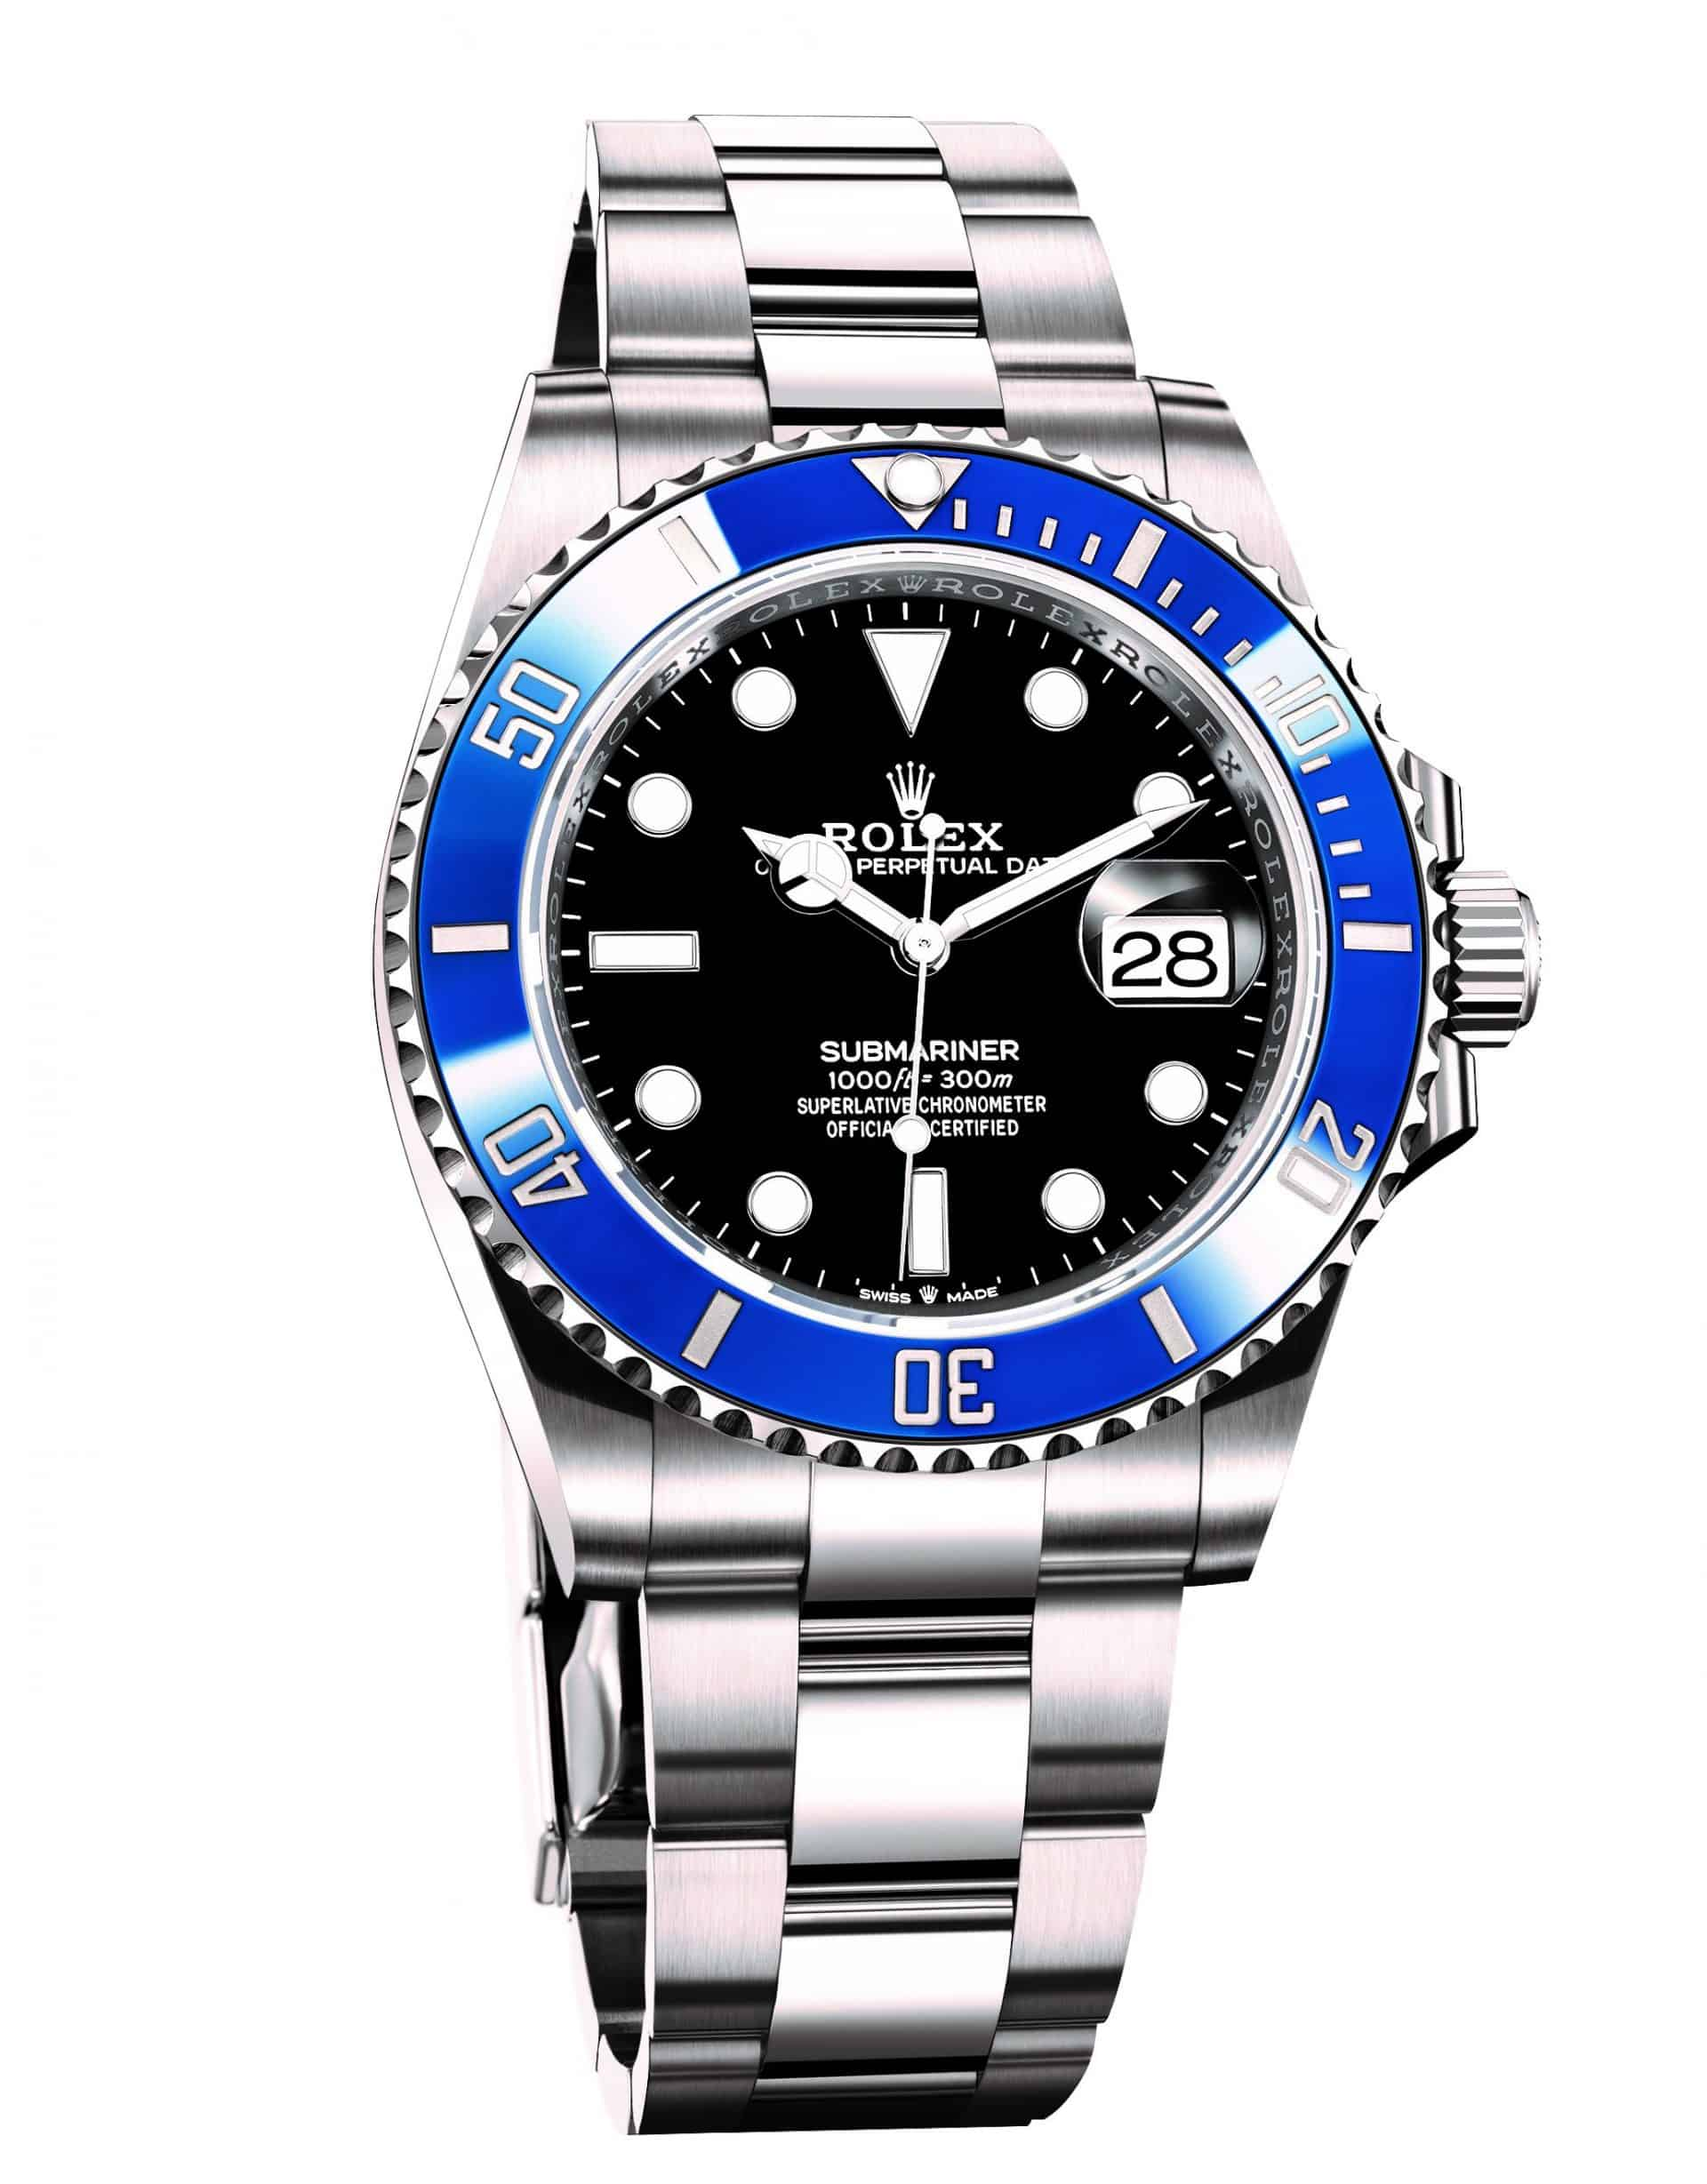 Rolex Oyster Perpetual Submariner Date-Modelle 126619 LB